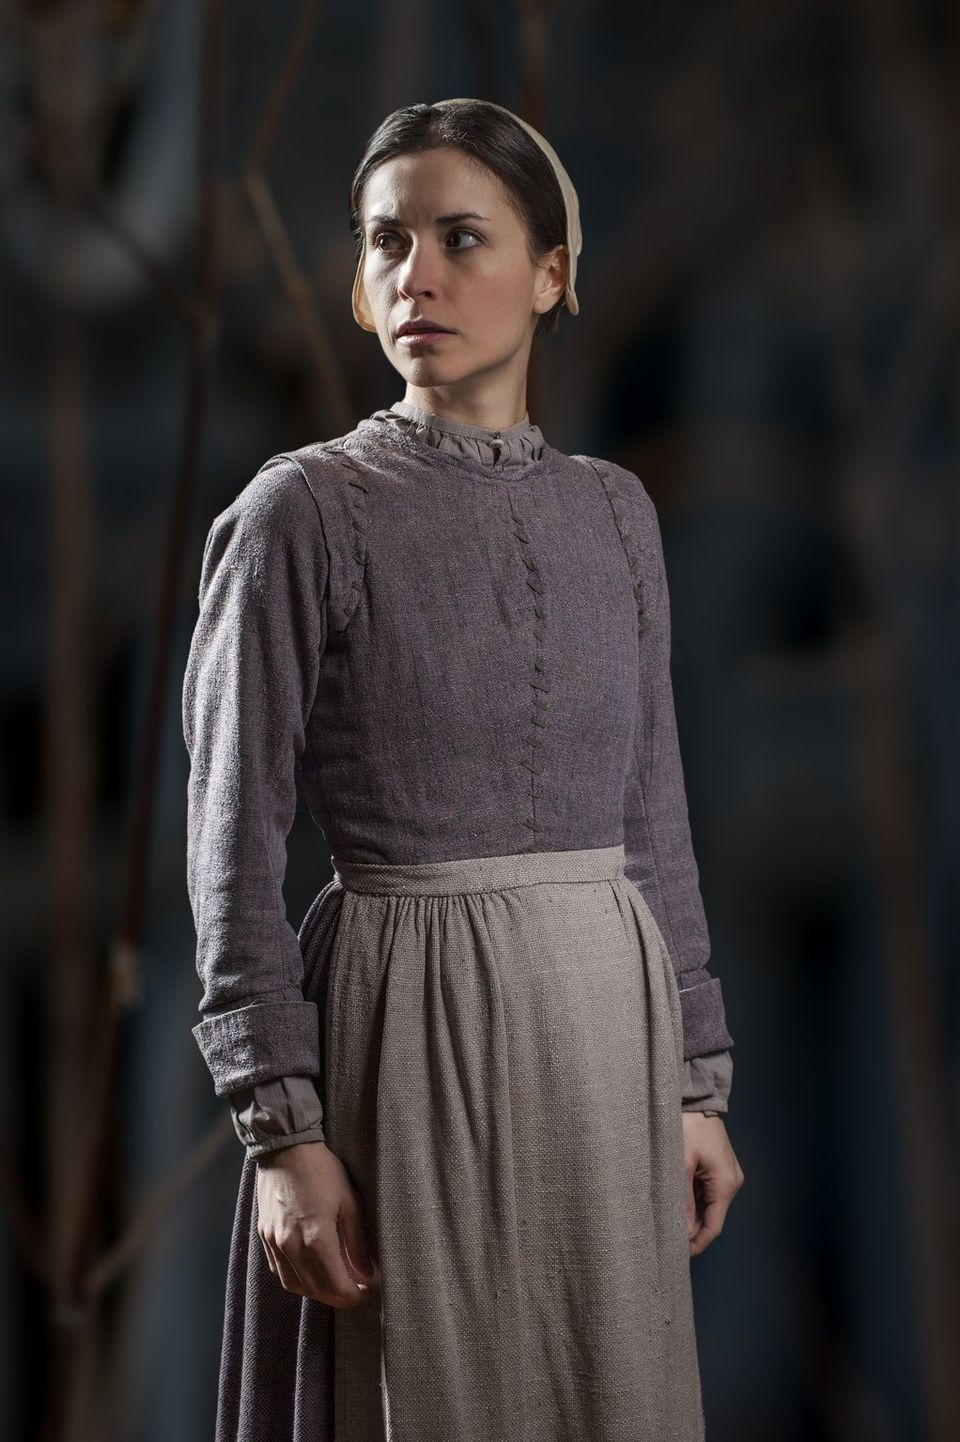 role of abigail on witch trials in the town of salem essay The witch trials revealed the true characteristics of the society in salem the main antagonist of the story abigail williams, after having an affair with a married man ¿½ john proctor and wants to pursue her relationship with him.